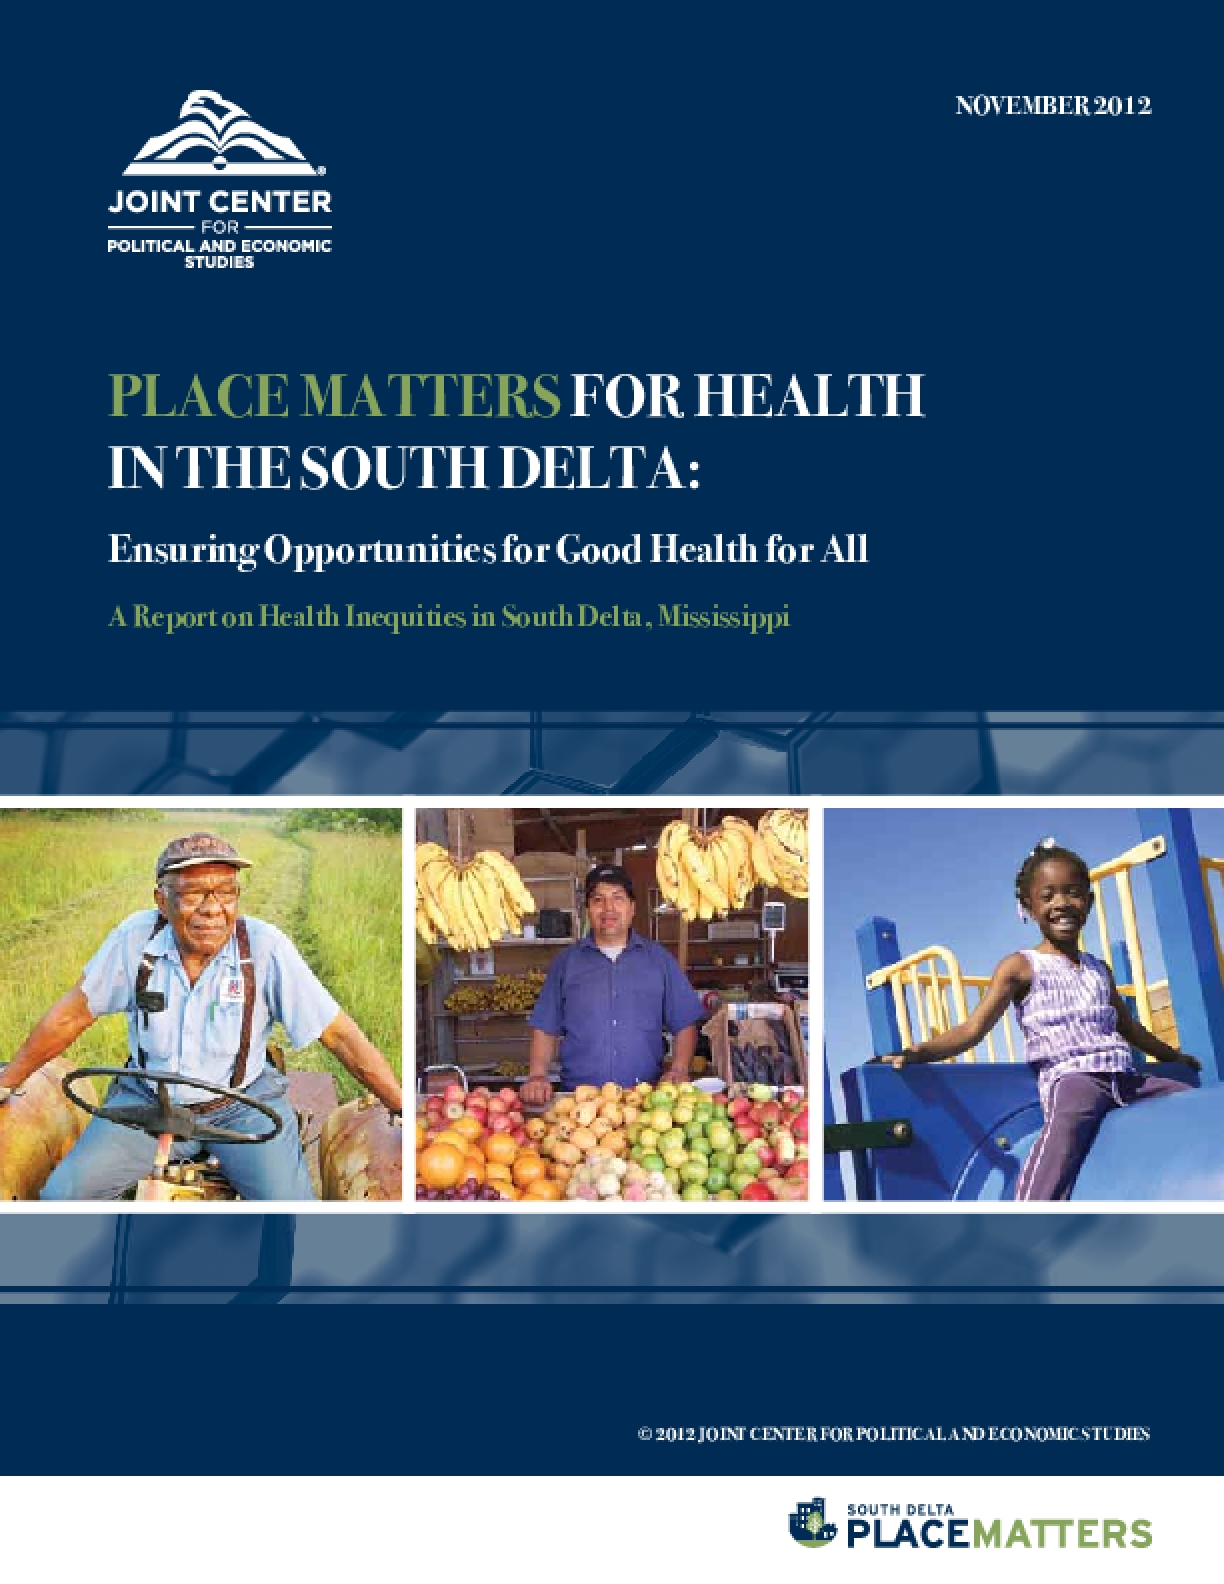 Place Matters for Health in the South Delta: Ensuring Opportunities for Good Health for All, A Report on Health Inequities in South Delta, Mississippi